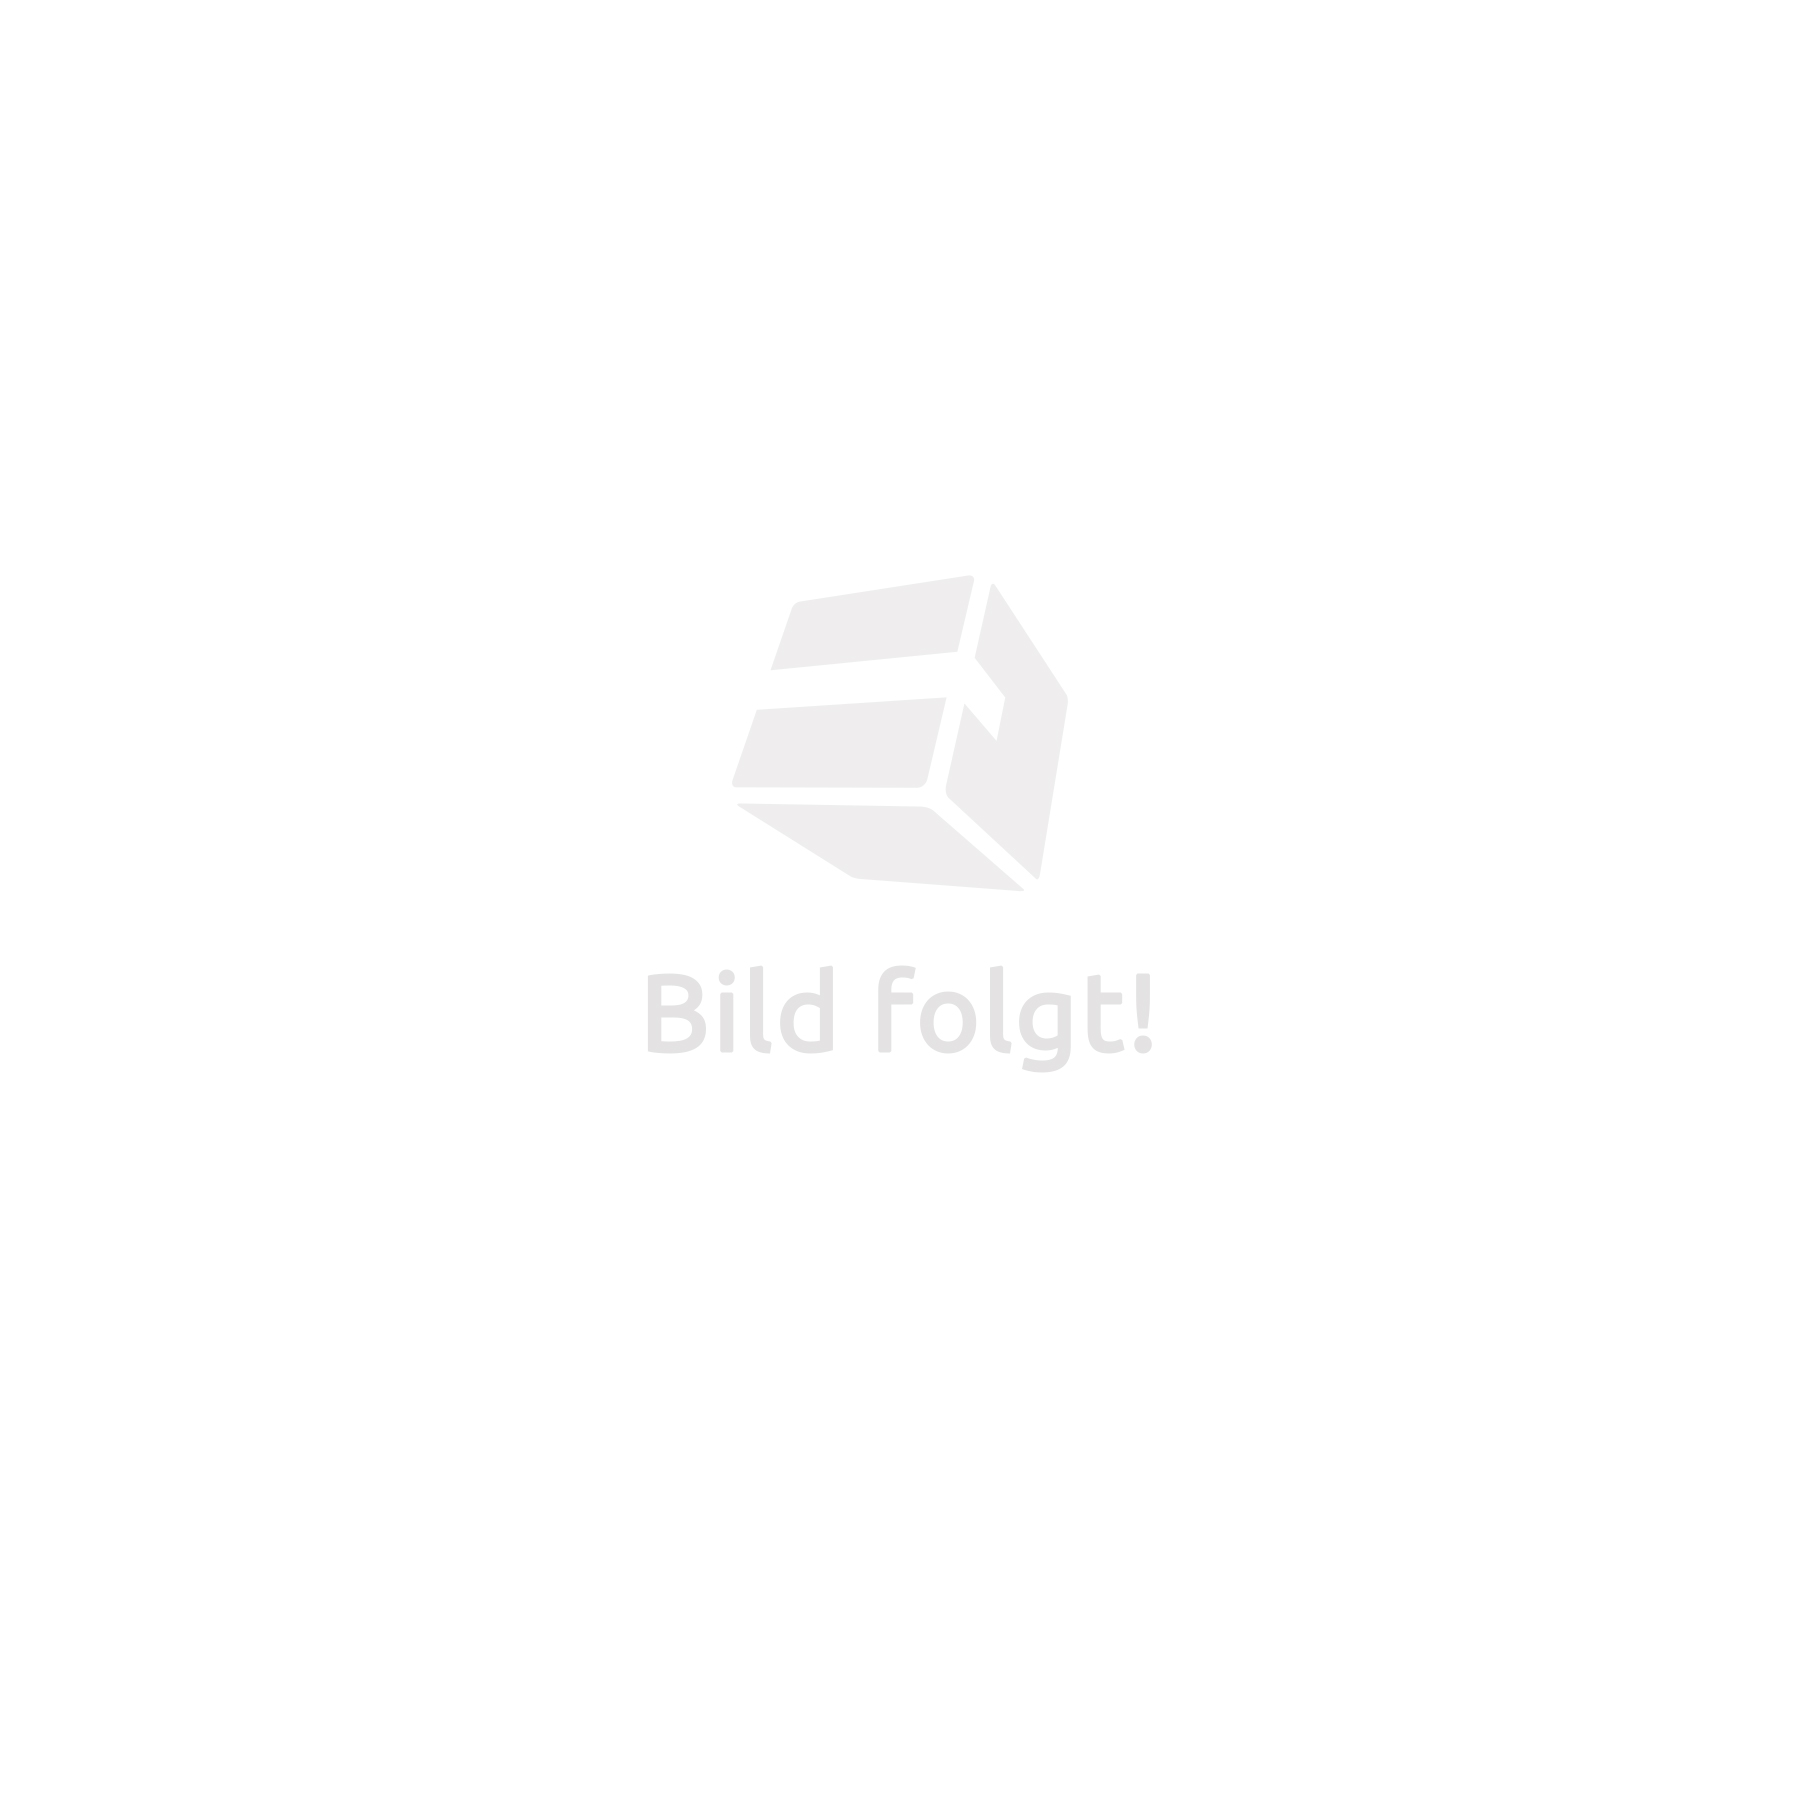 OFFICE CHAIR EXECUTIVE RACING GAMING CAR SEAT WITH BACK SUPPORT